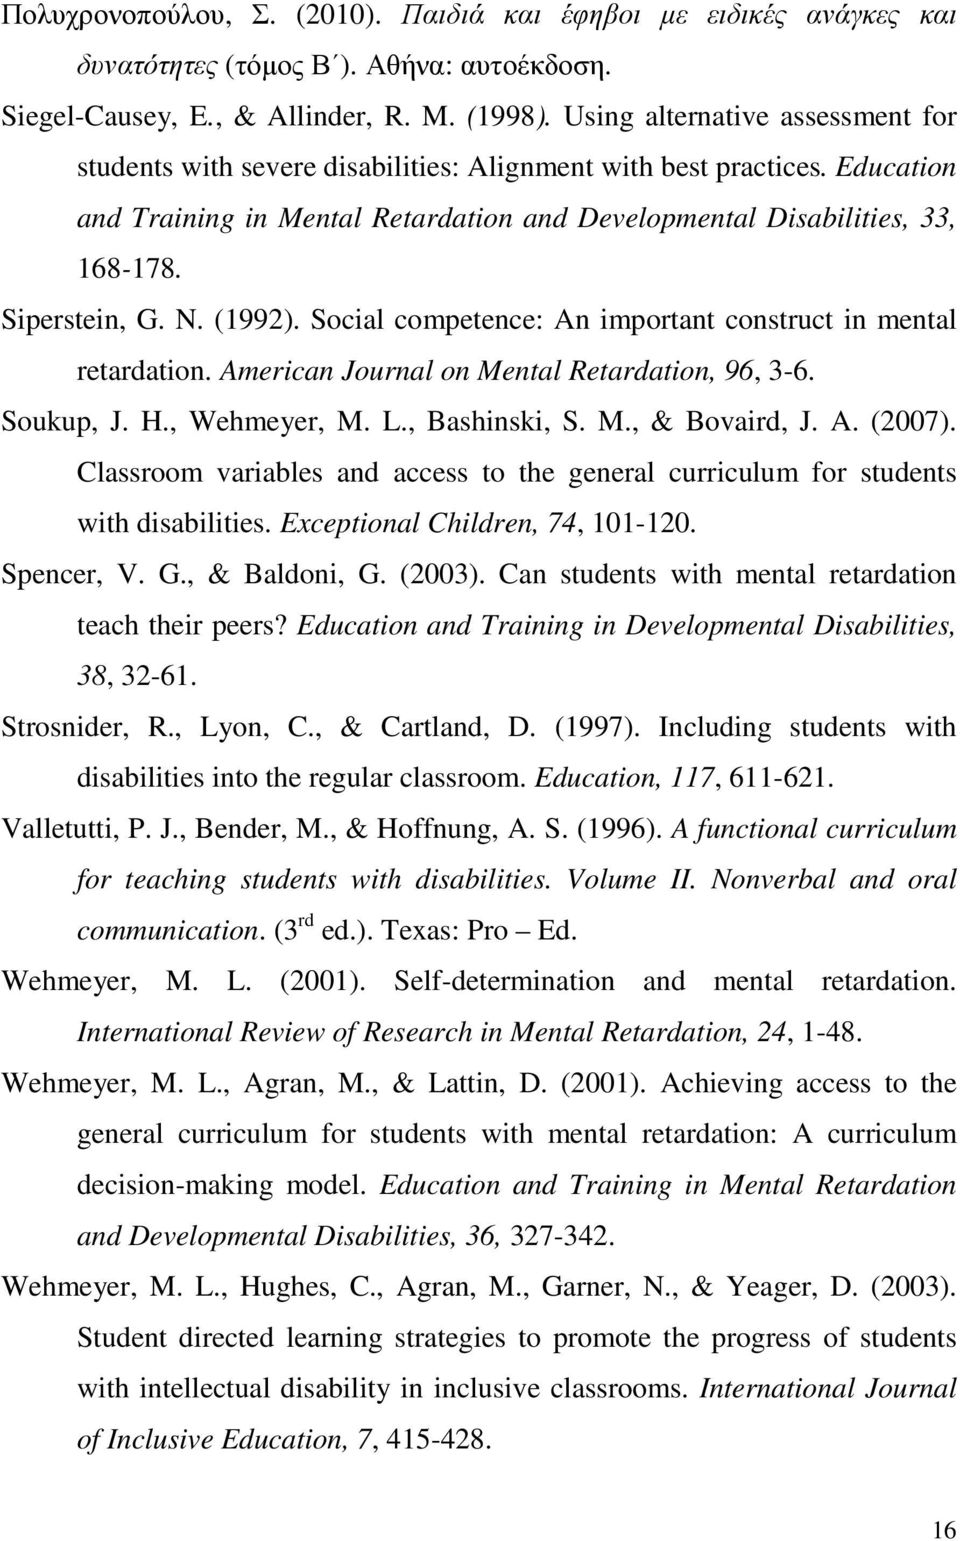 Siperstein, G. N. (1992). Social competence: An important construct in mental retardation. American Journal on Mental Retardation, 96, 3-6. Soukup, J. H., Wehmeyer, M. L., Bashinski, S. M., & Bovaird, J.